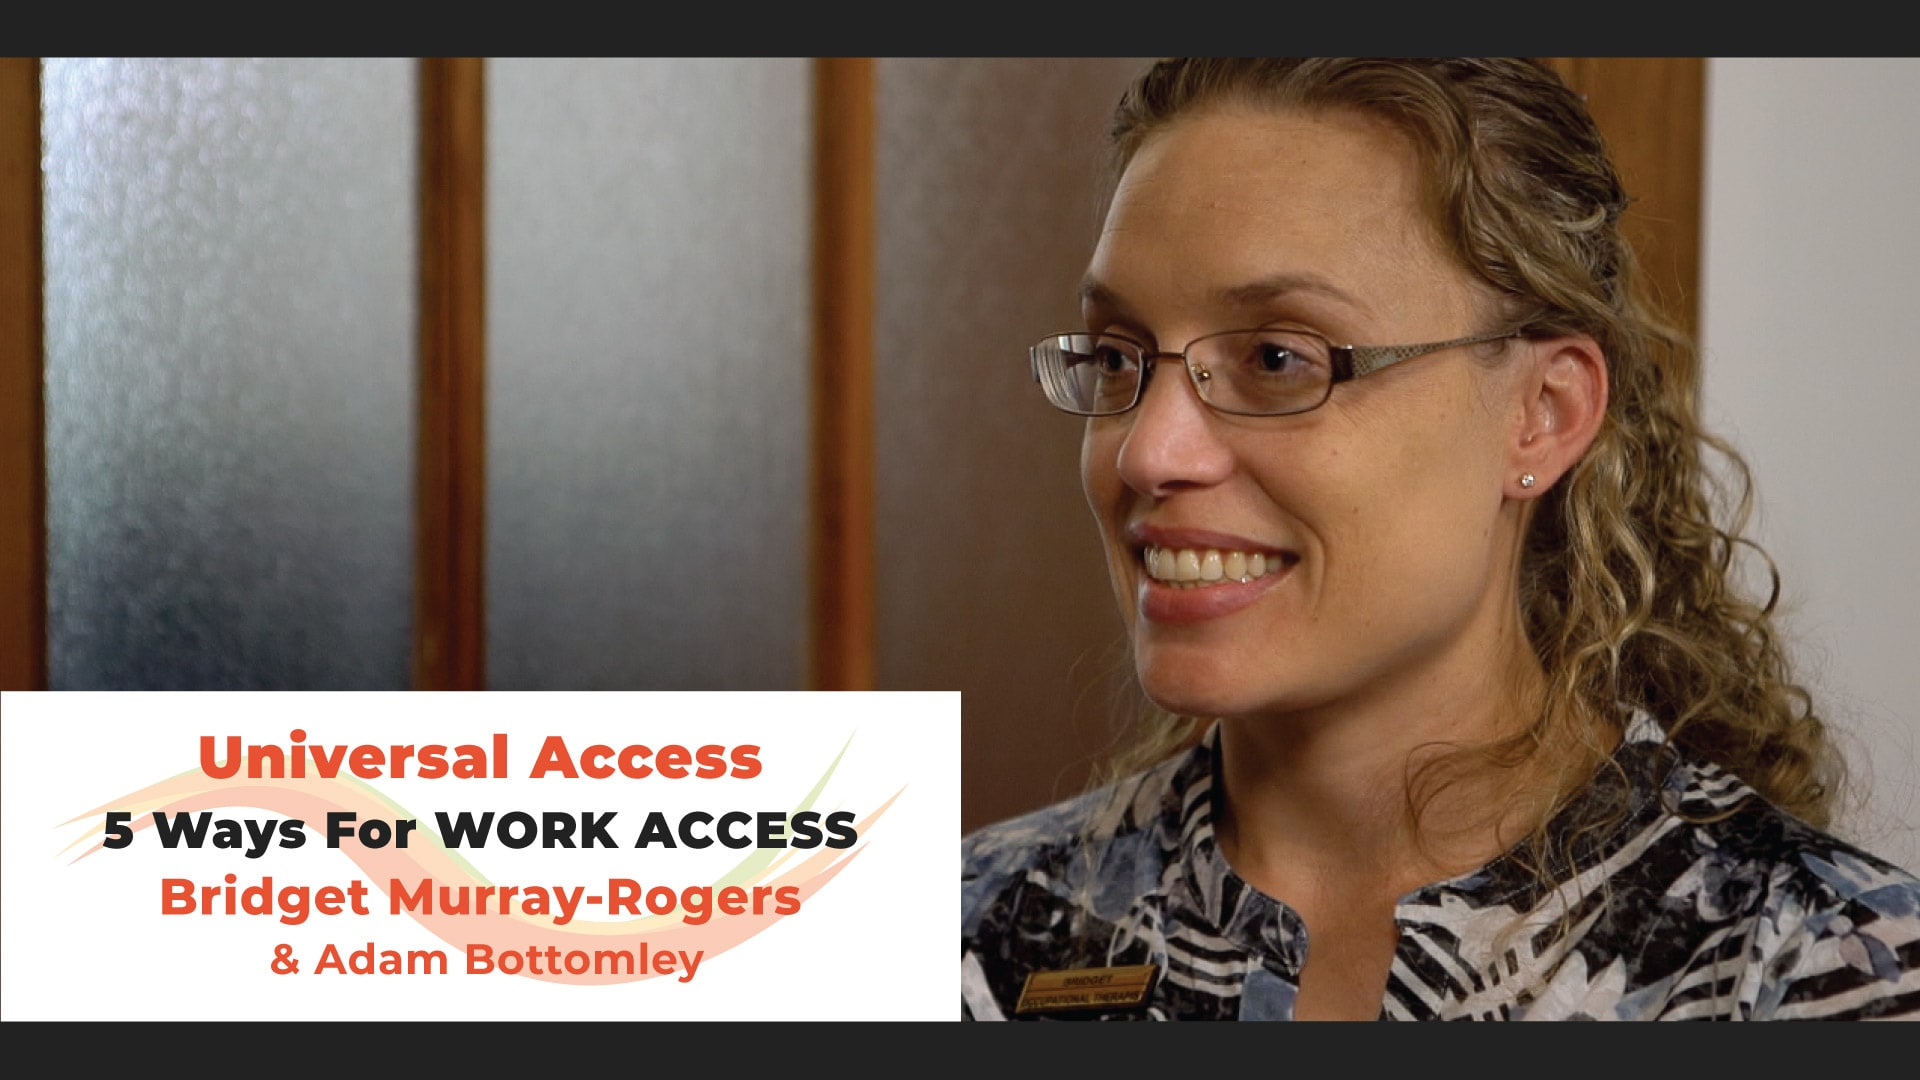 Universal Access in the Workplace. 5 Ways for Work Access